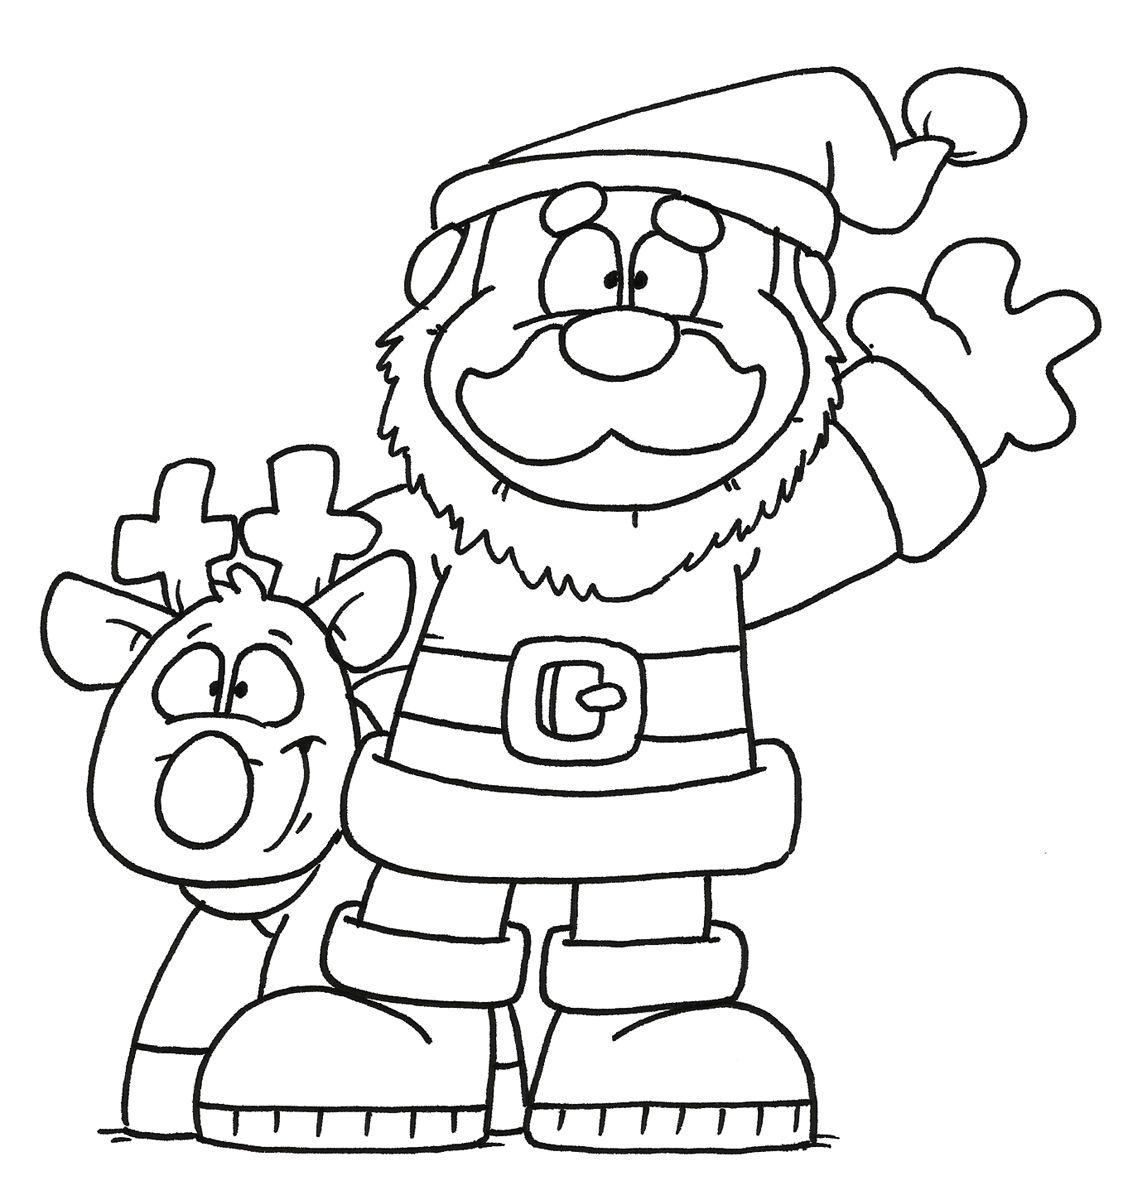 Dustin Pike Freebie Digi Santa Reindeer Bjl Christmas Coloring Pages Animal Coloring Pages Colouring Pages